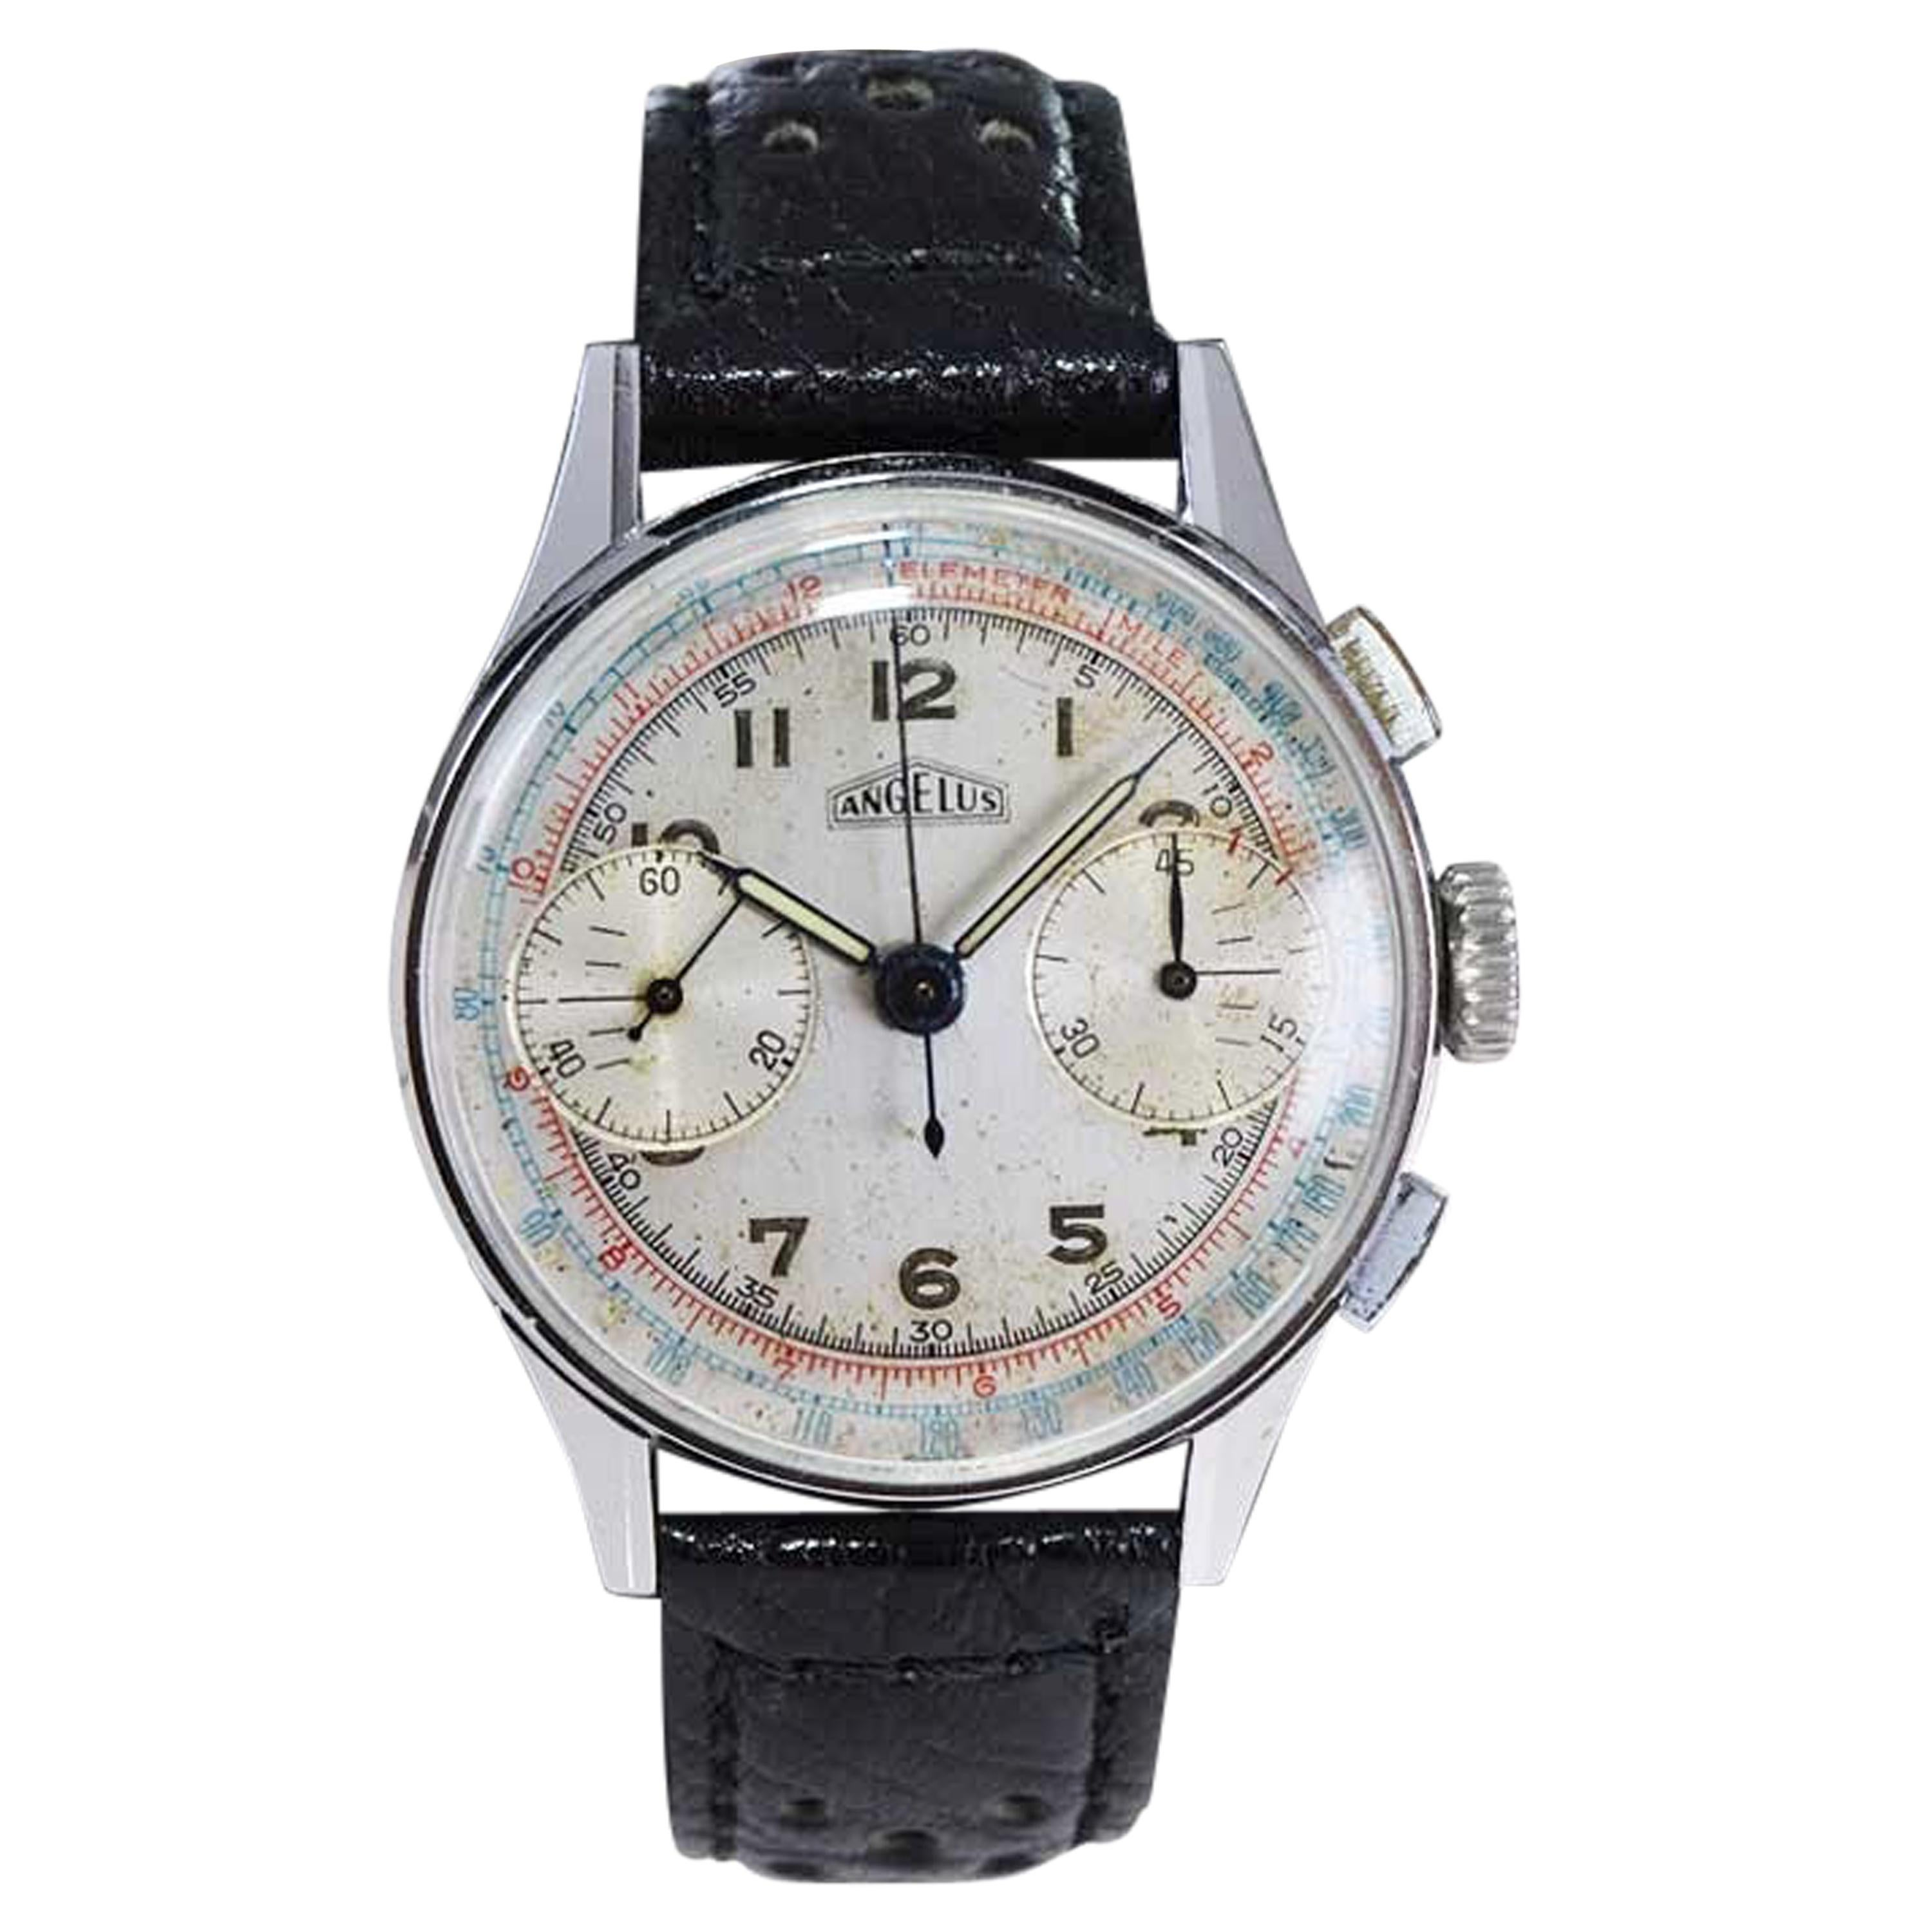 Angelus Stainless Steel Two Register Chronograph Manual Watch, 1940s